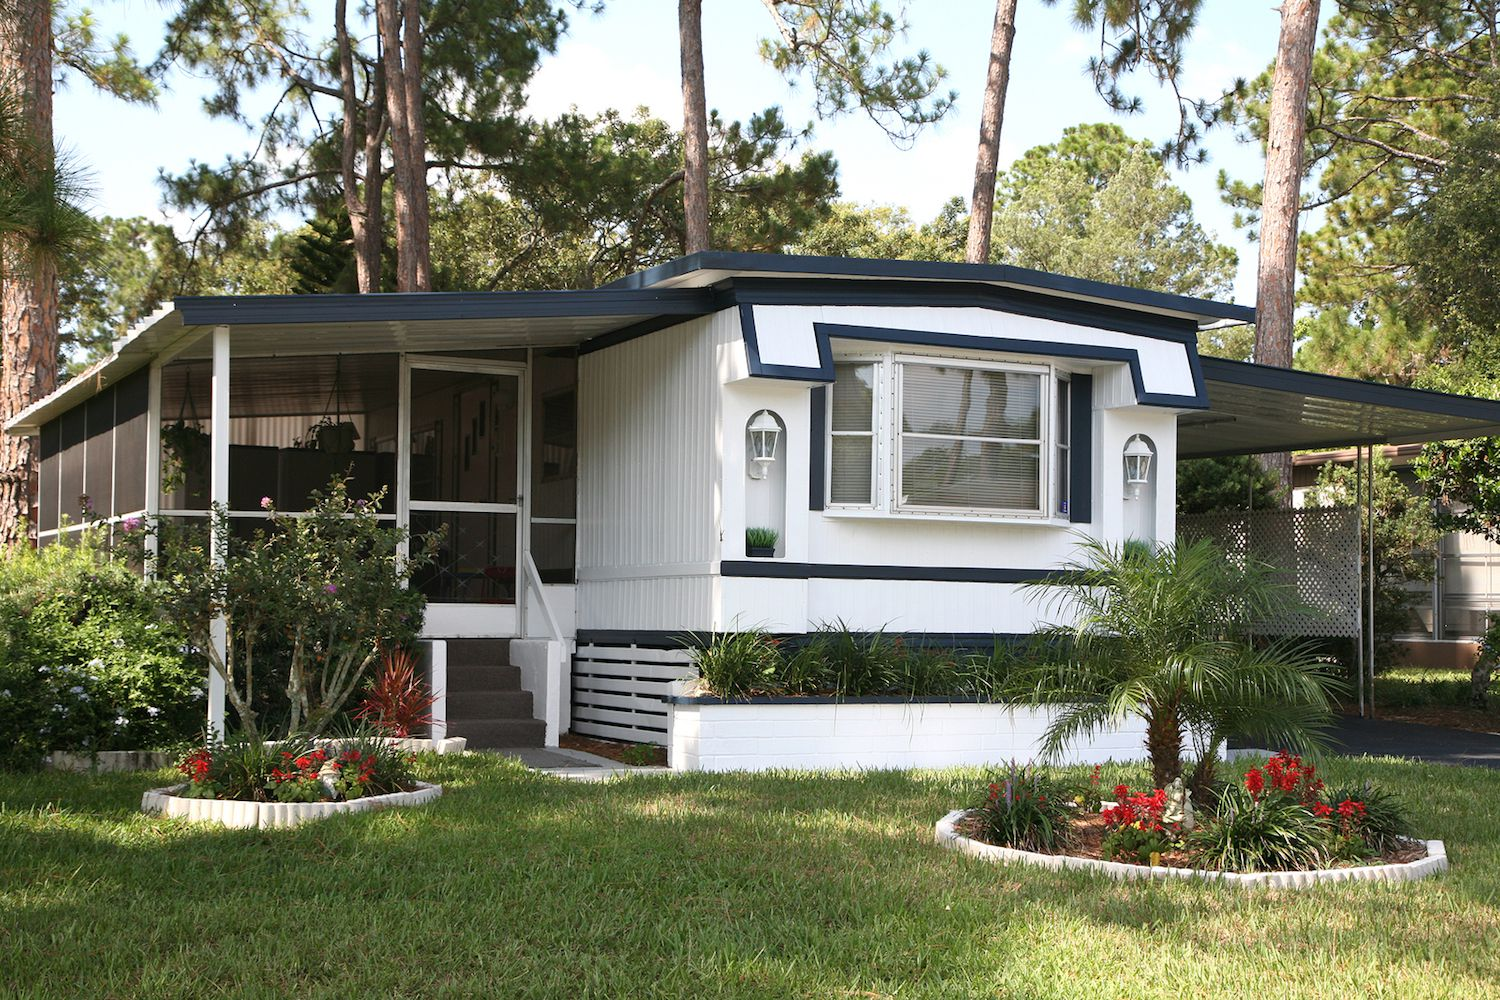 Four Signs You Should Purchase a Mobile Home